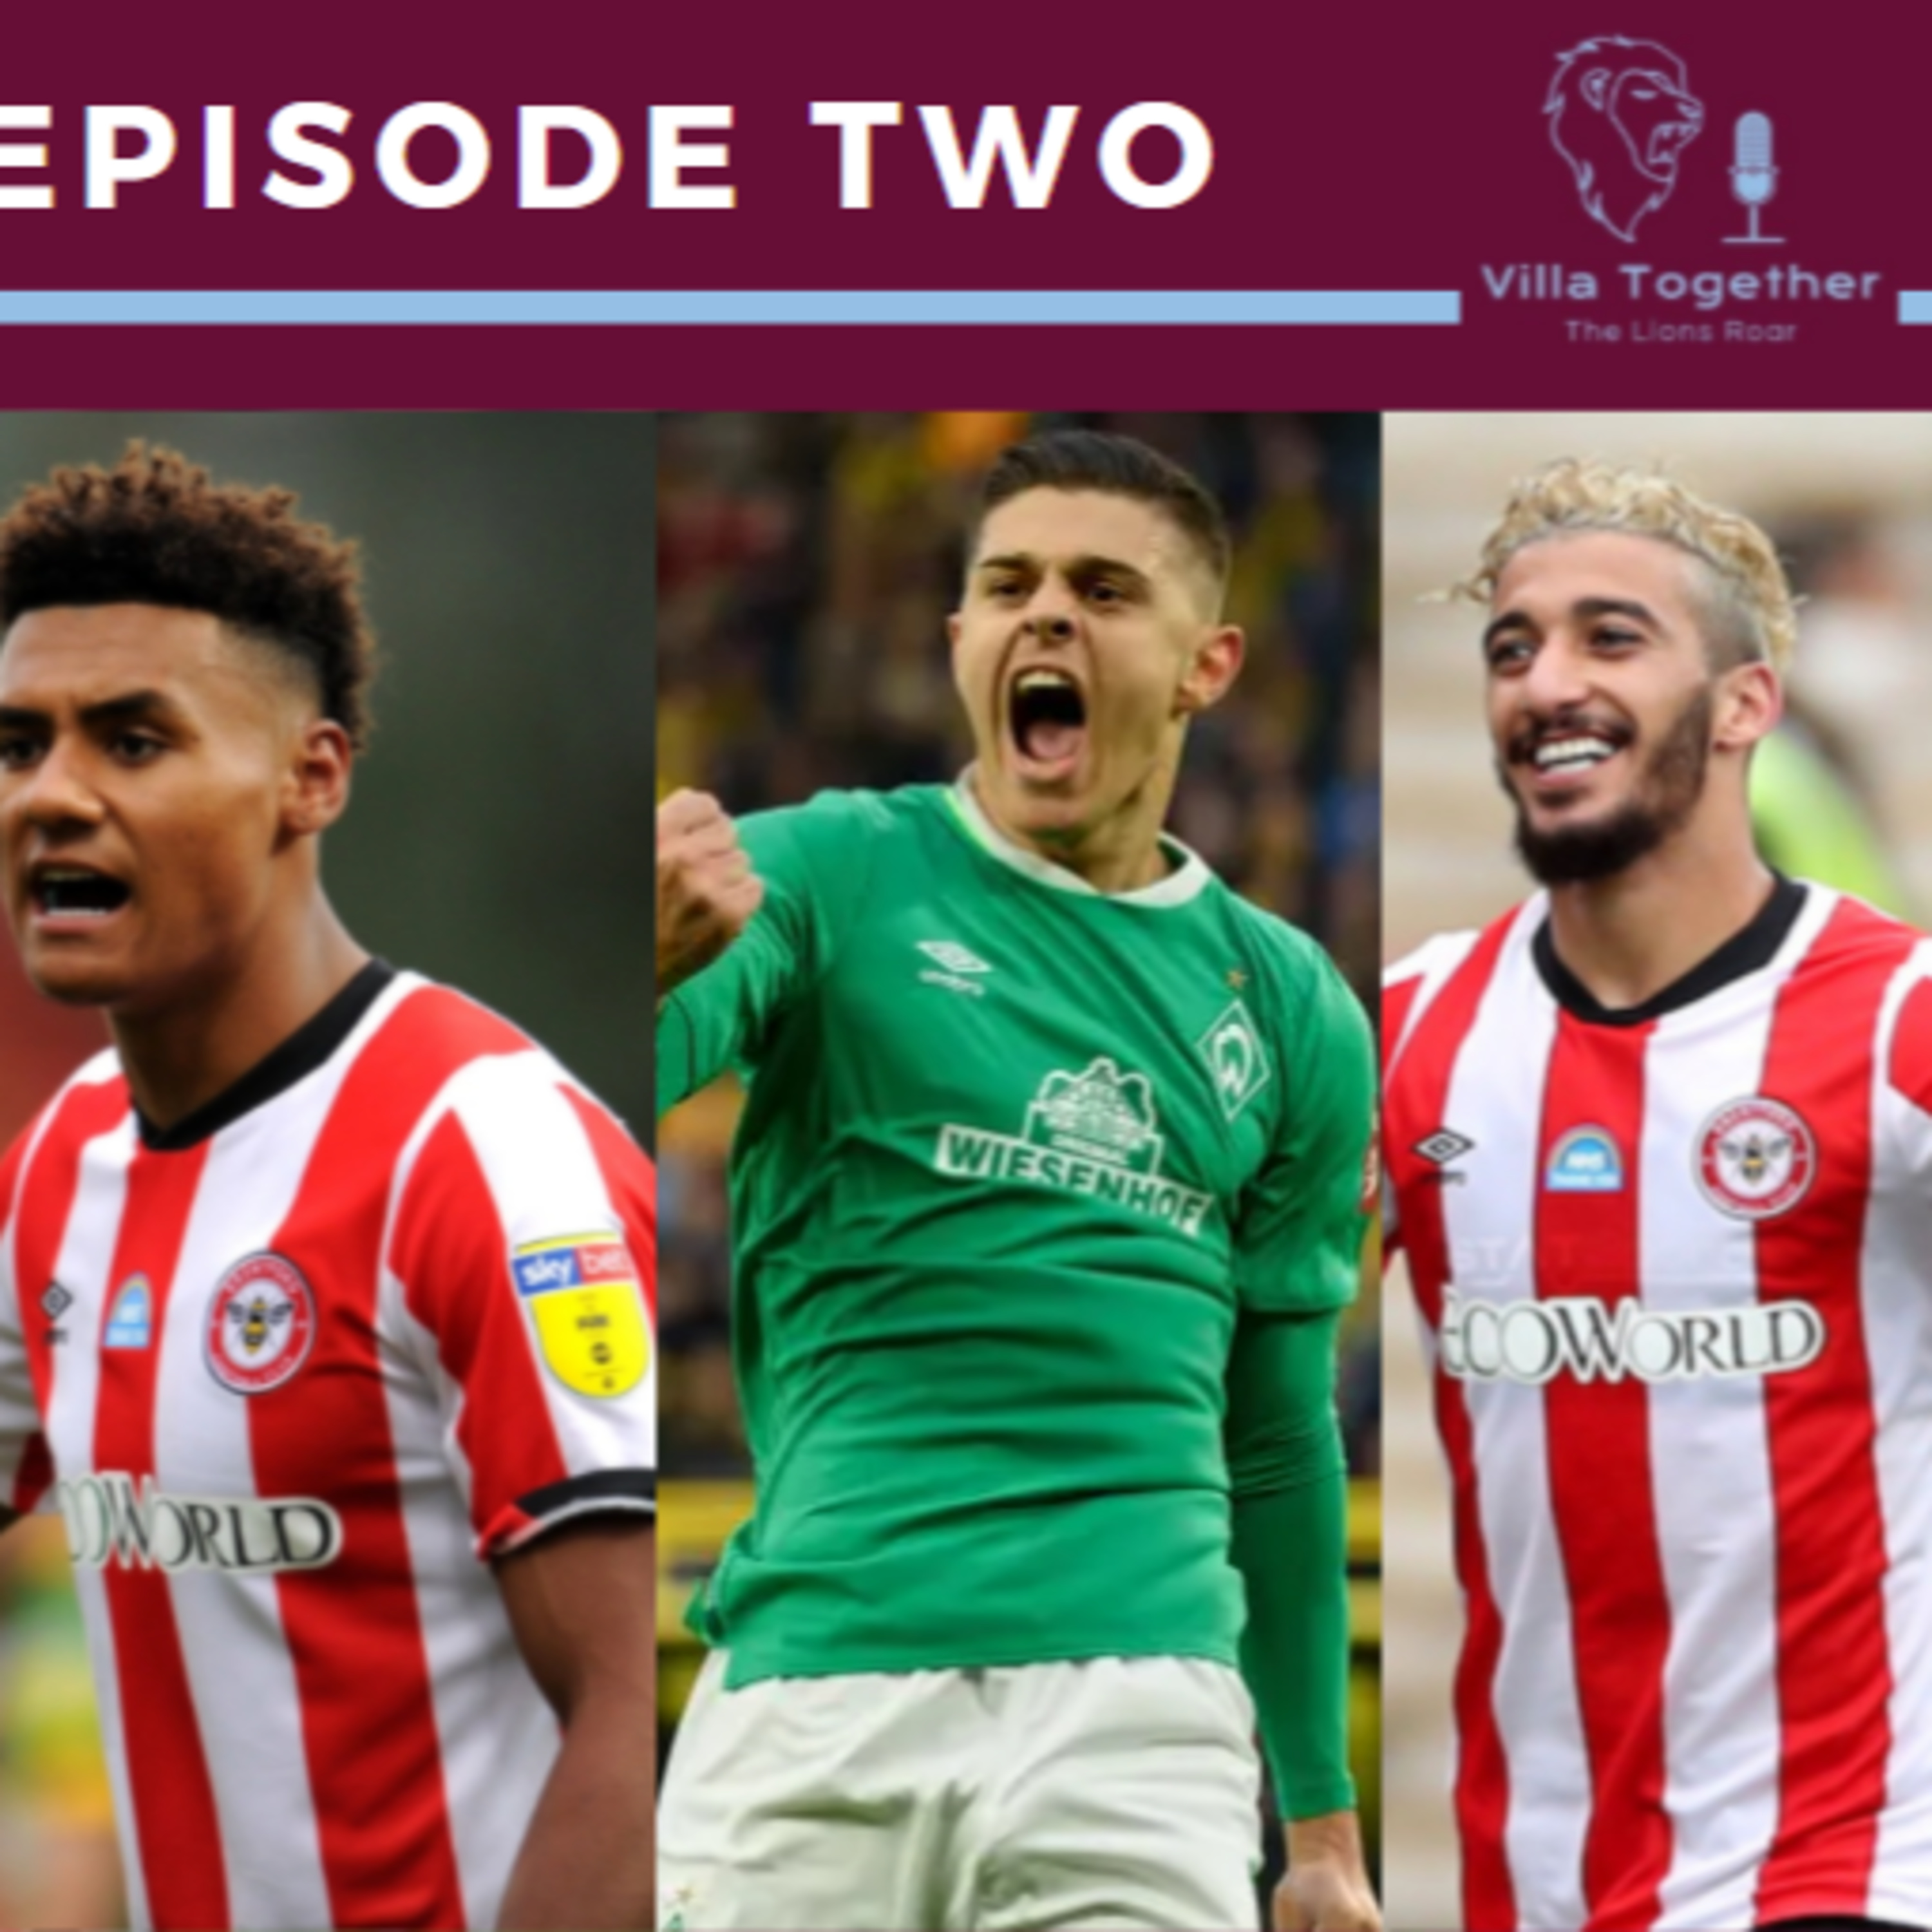 Villa Together - The Lions Roar Podcast (Aston Villa Podcast) Episode Two